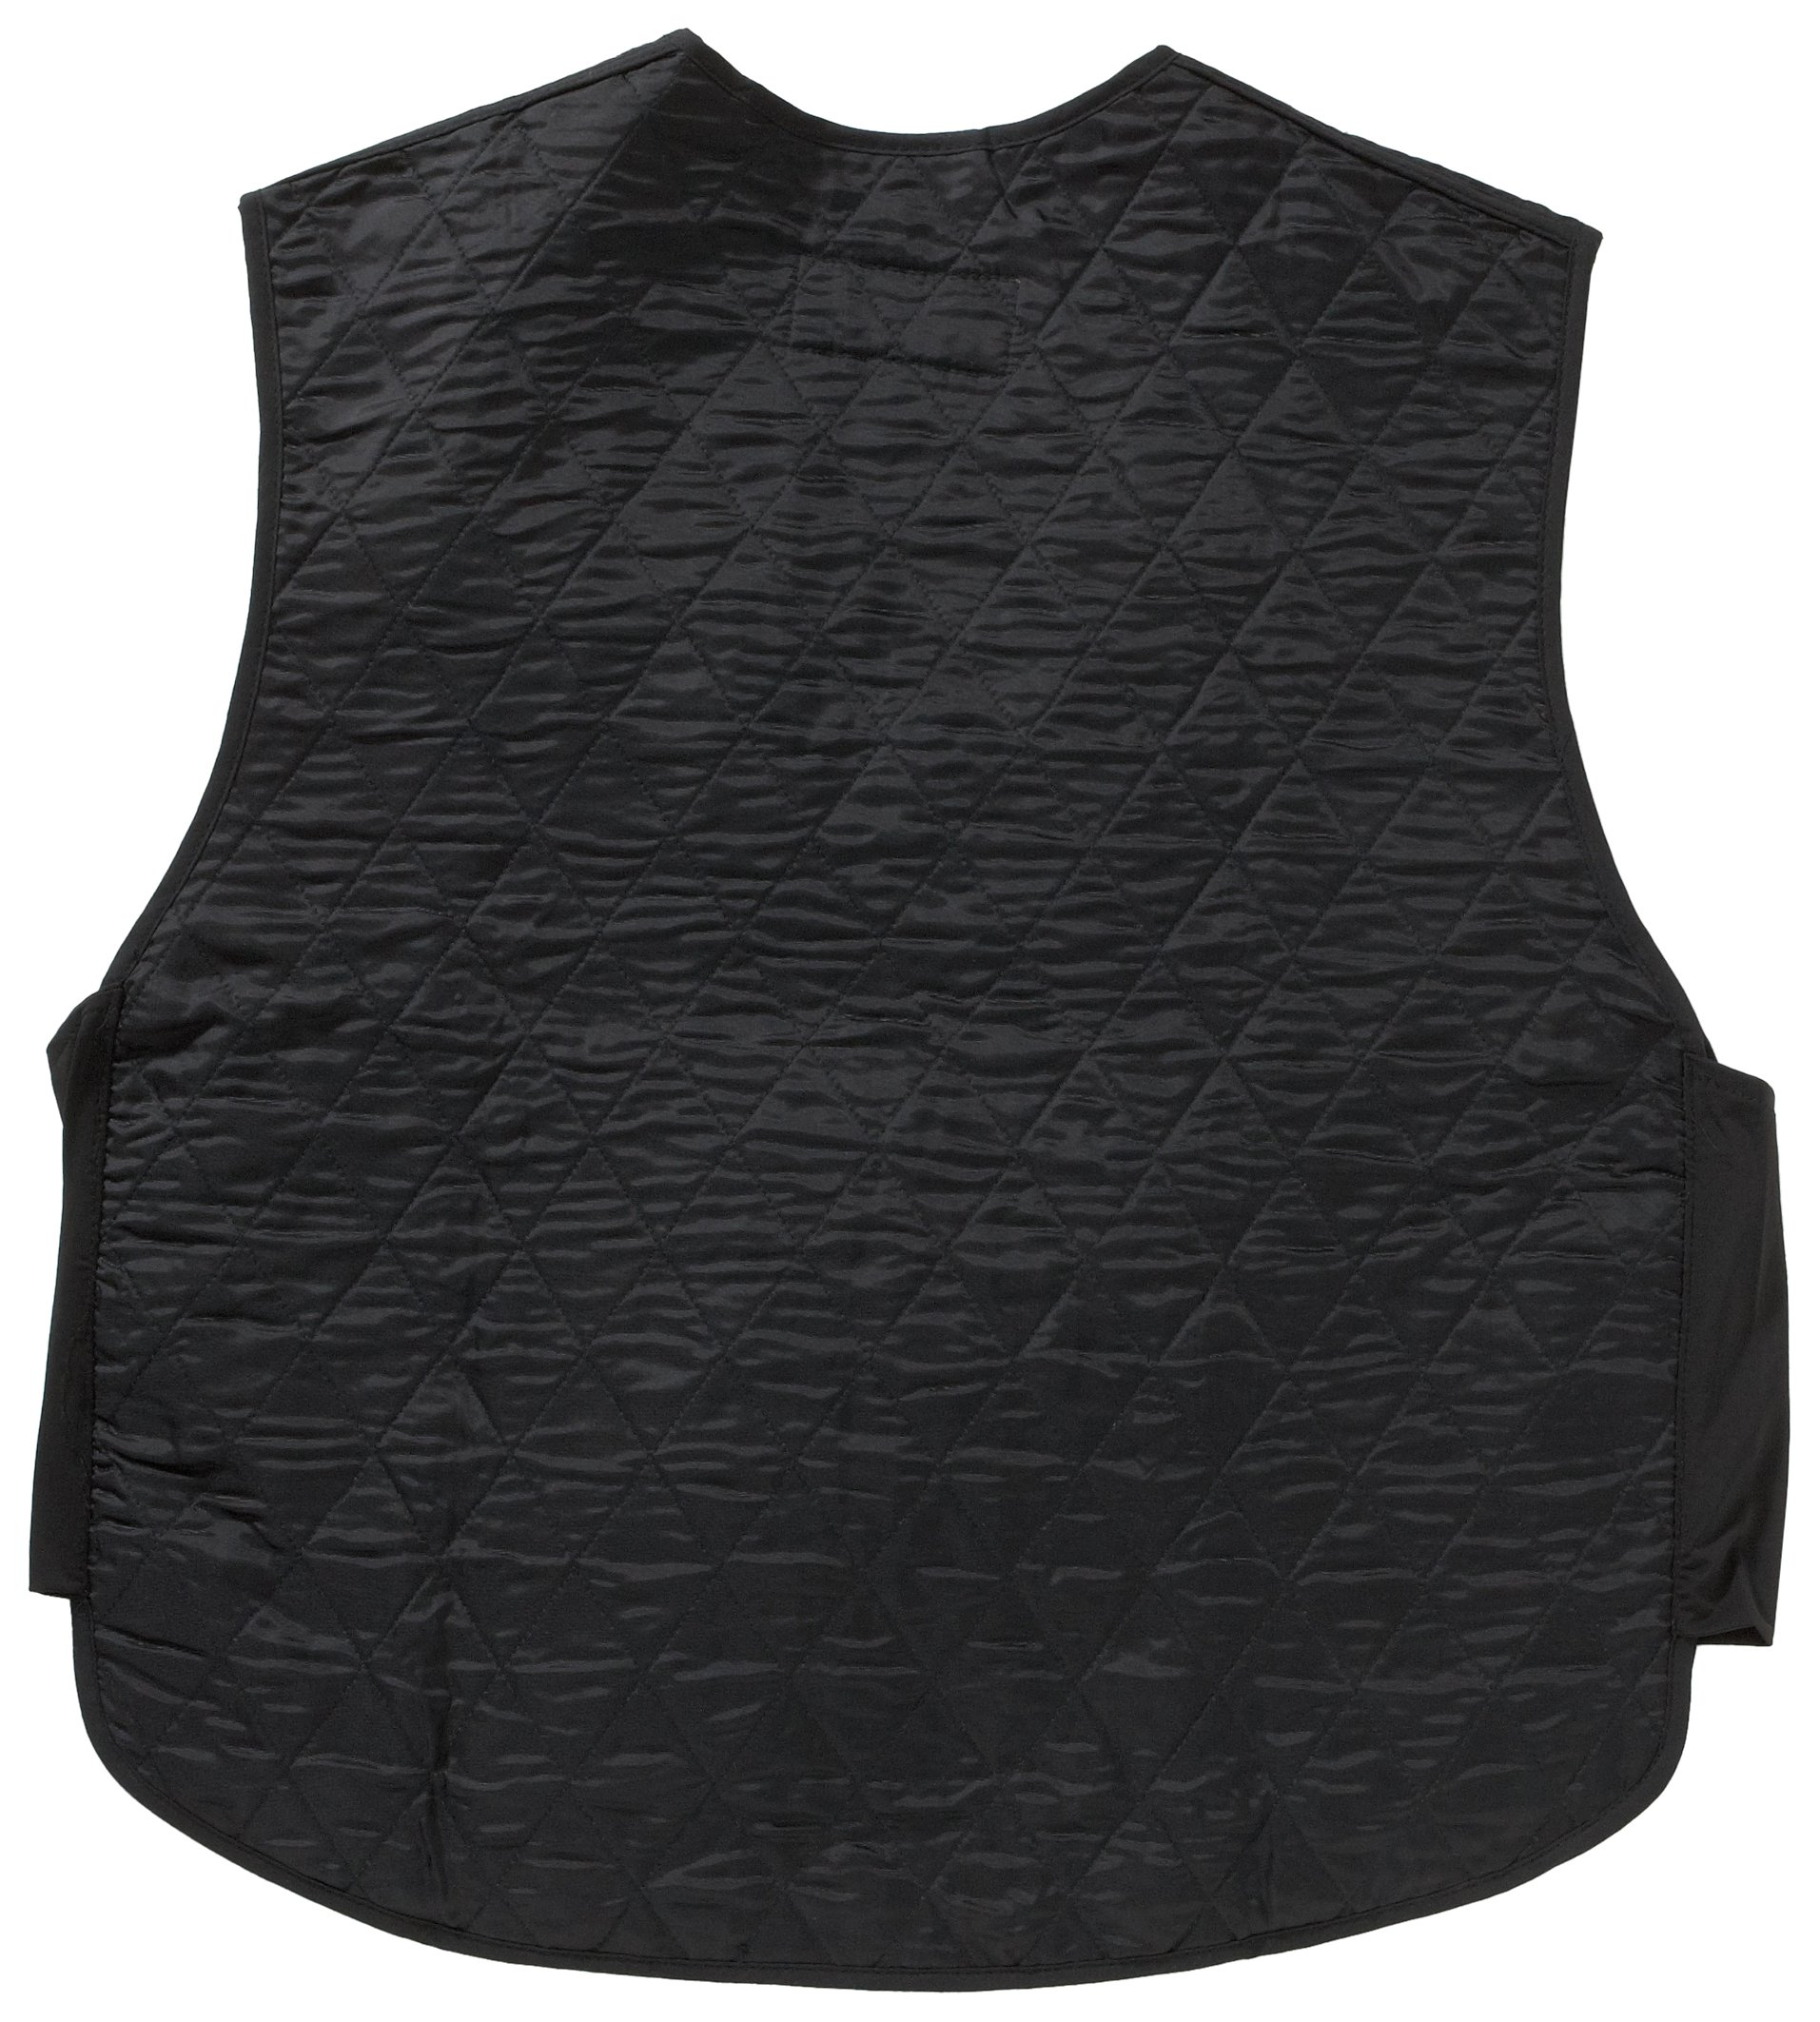 HyperKewl Evaporative Cooling Sport Vest, Black, XX-Large by HyperKewl